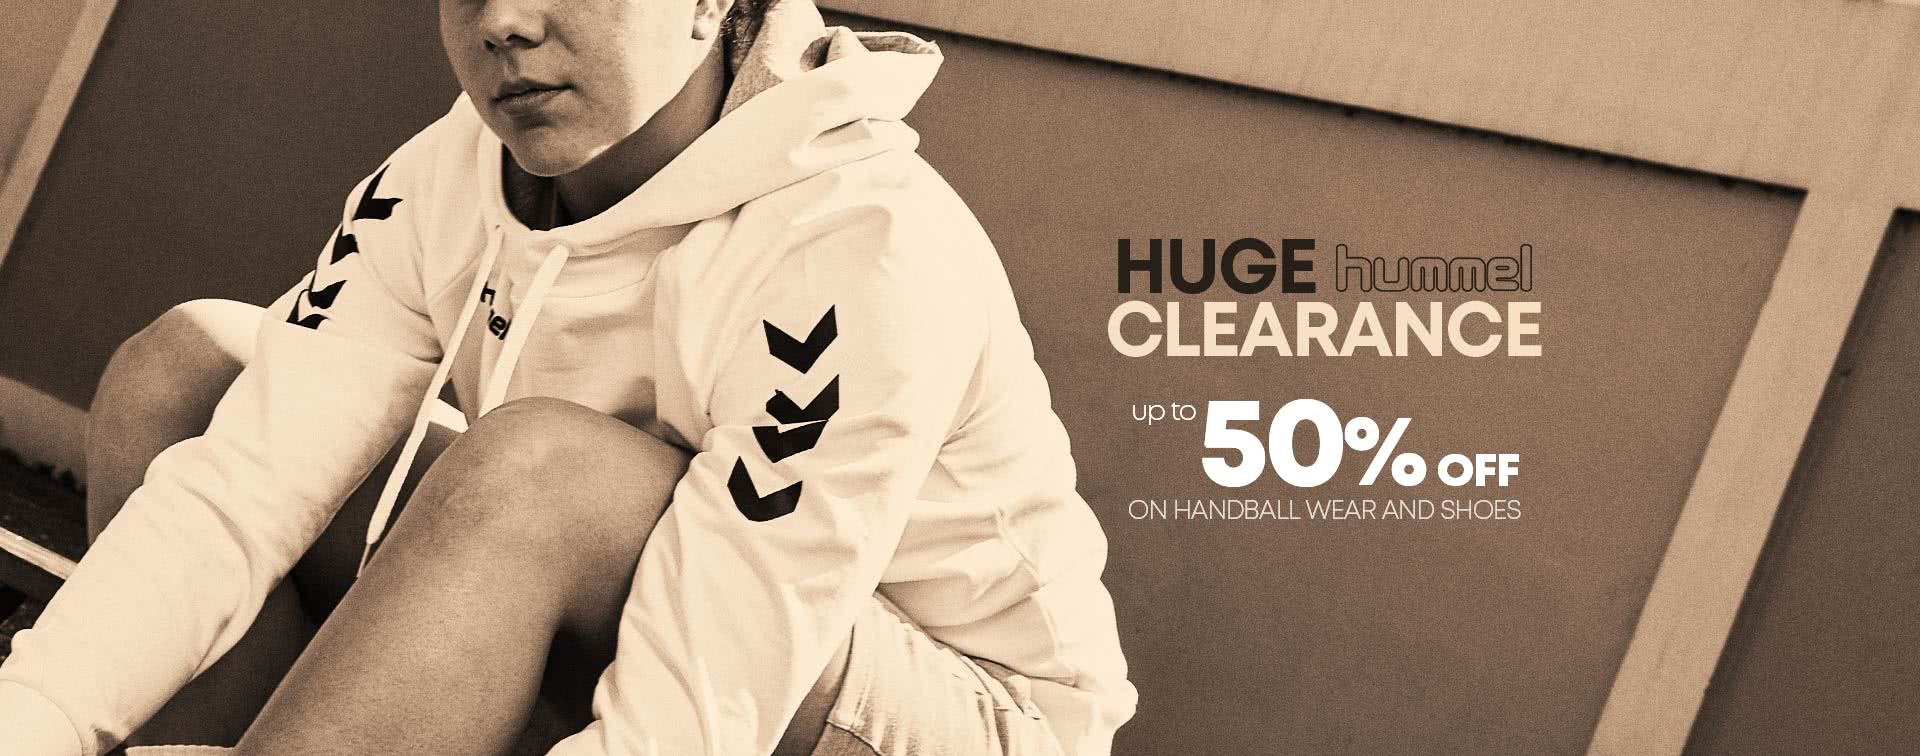 Hummel Clearance up to 50% off